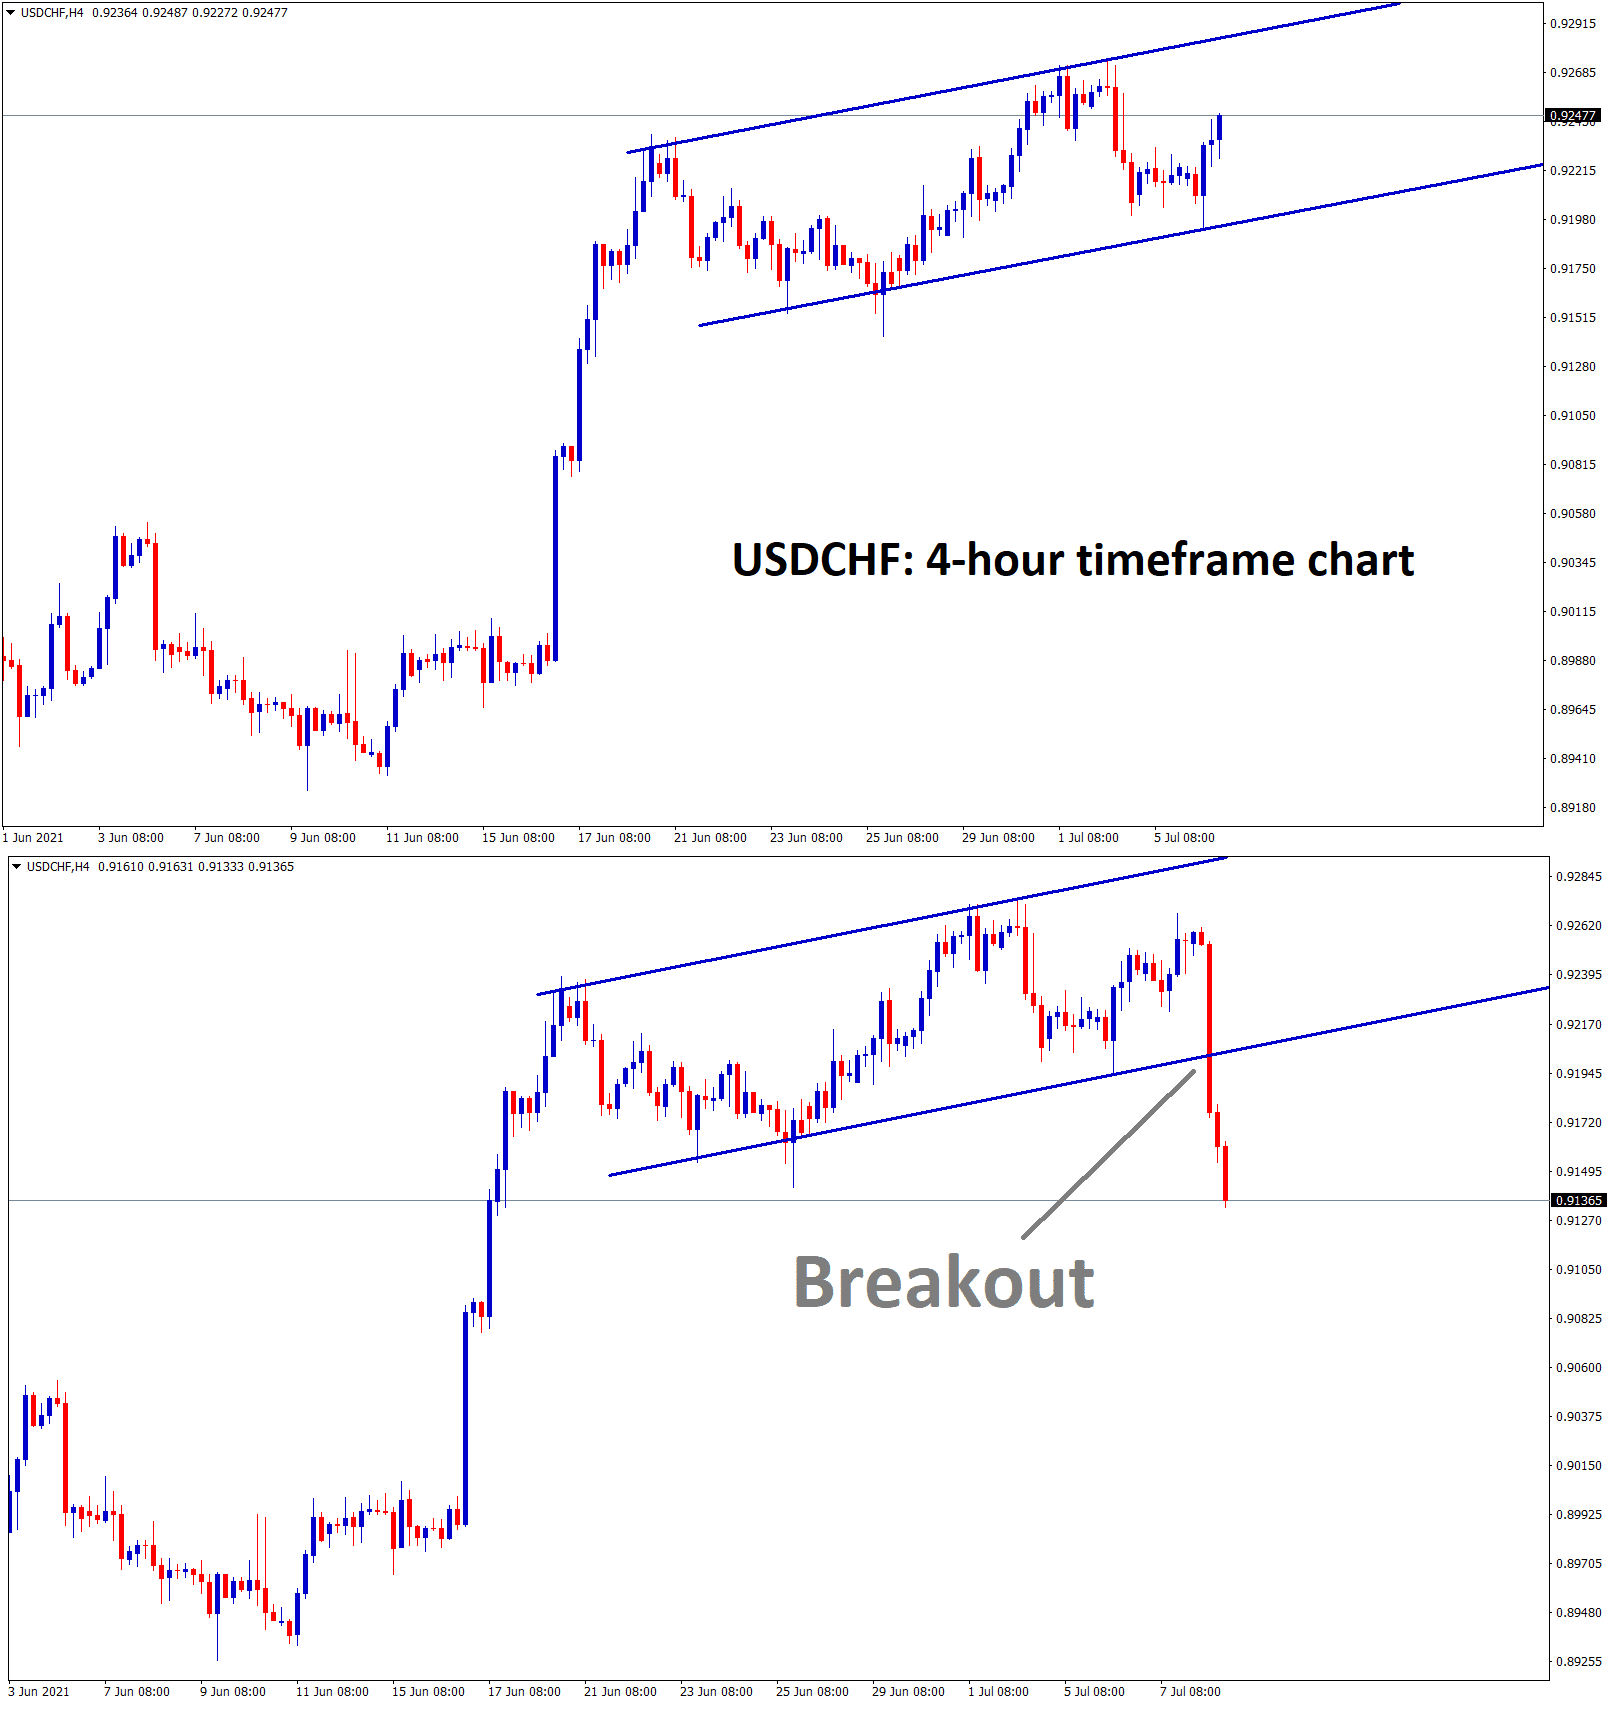 USDCHF is also moving in an uptrend channel line 1